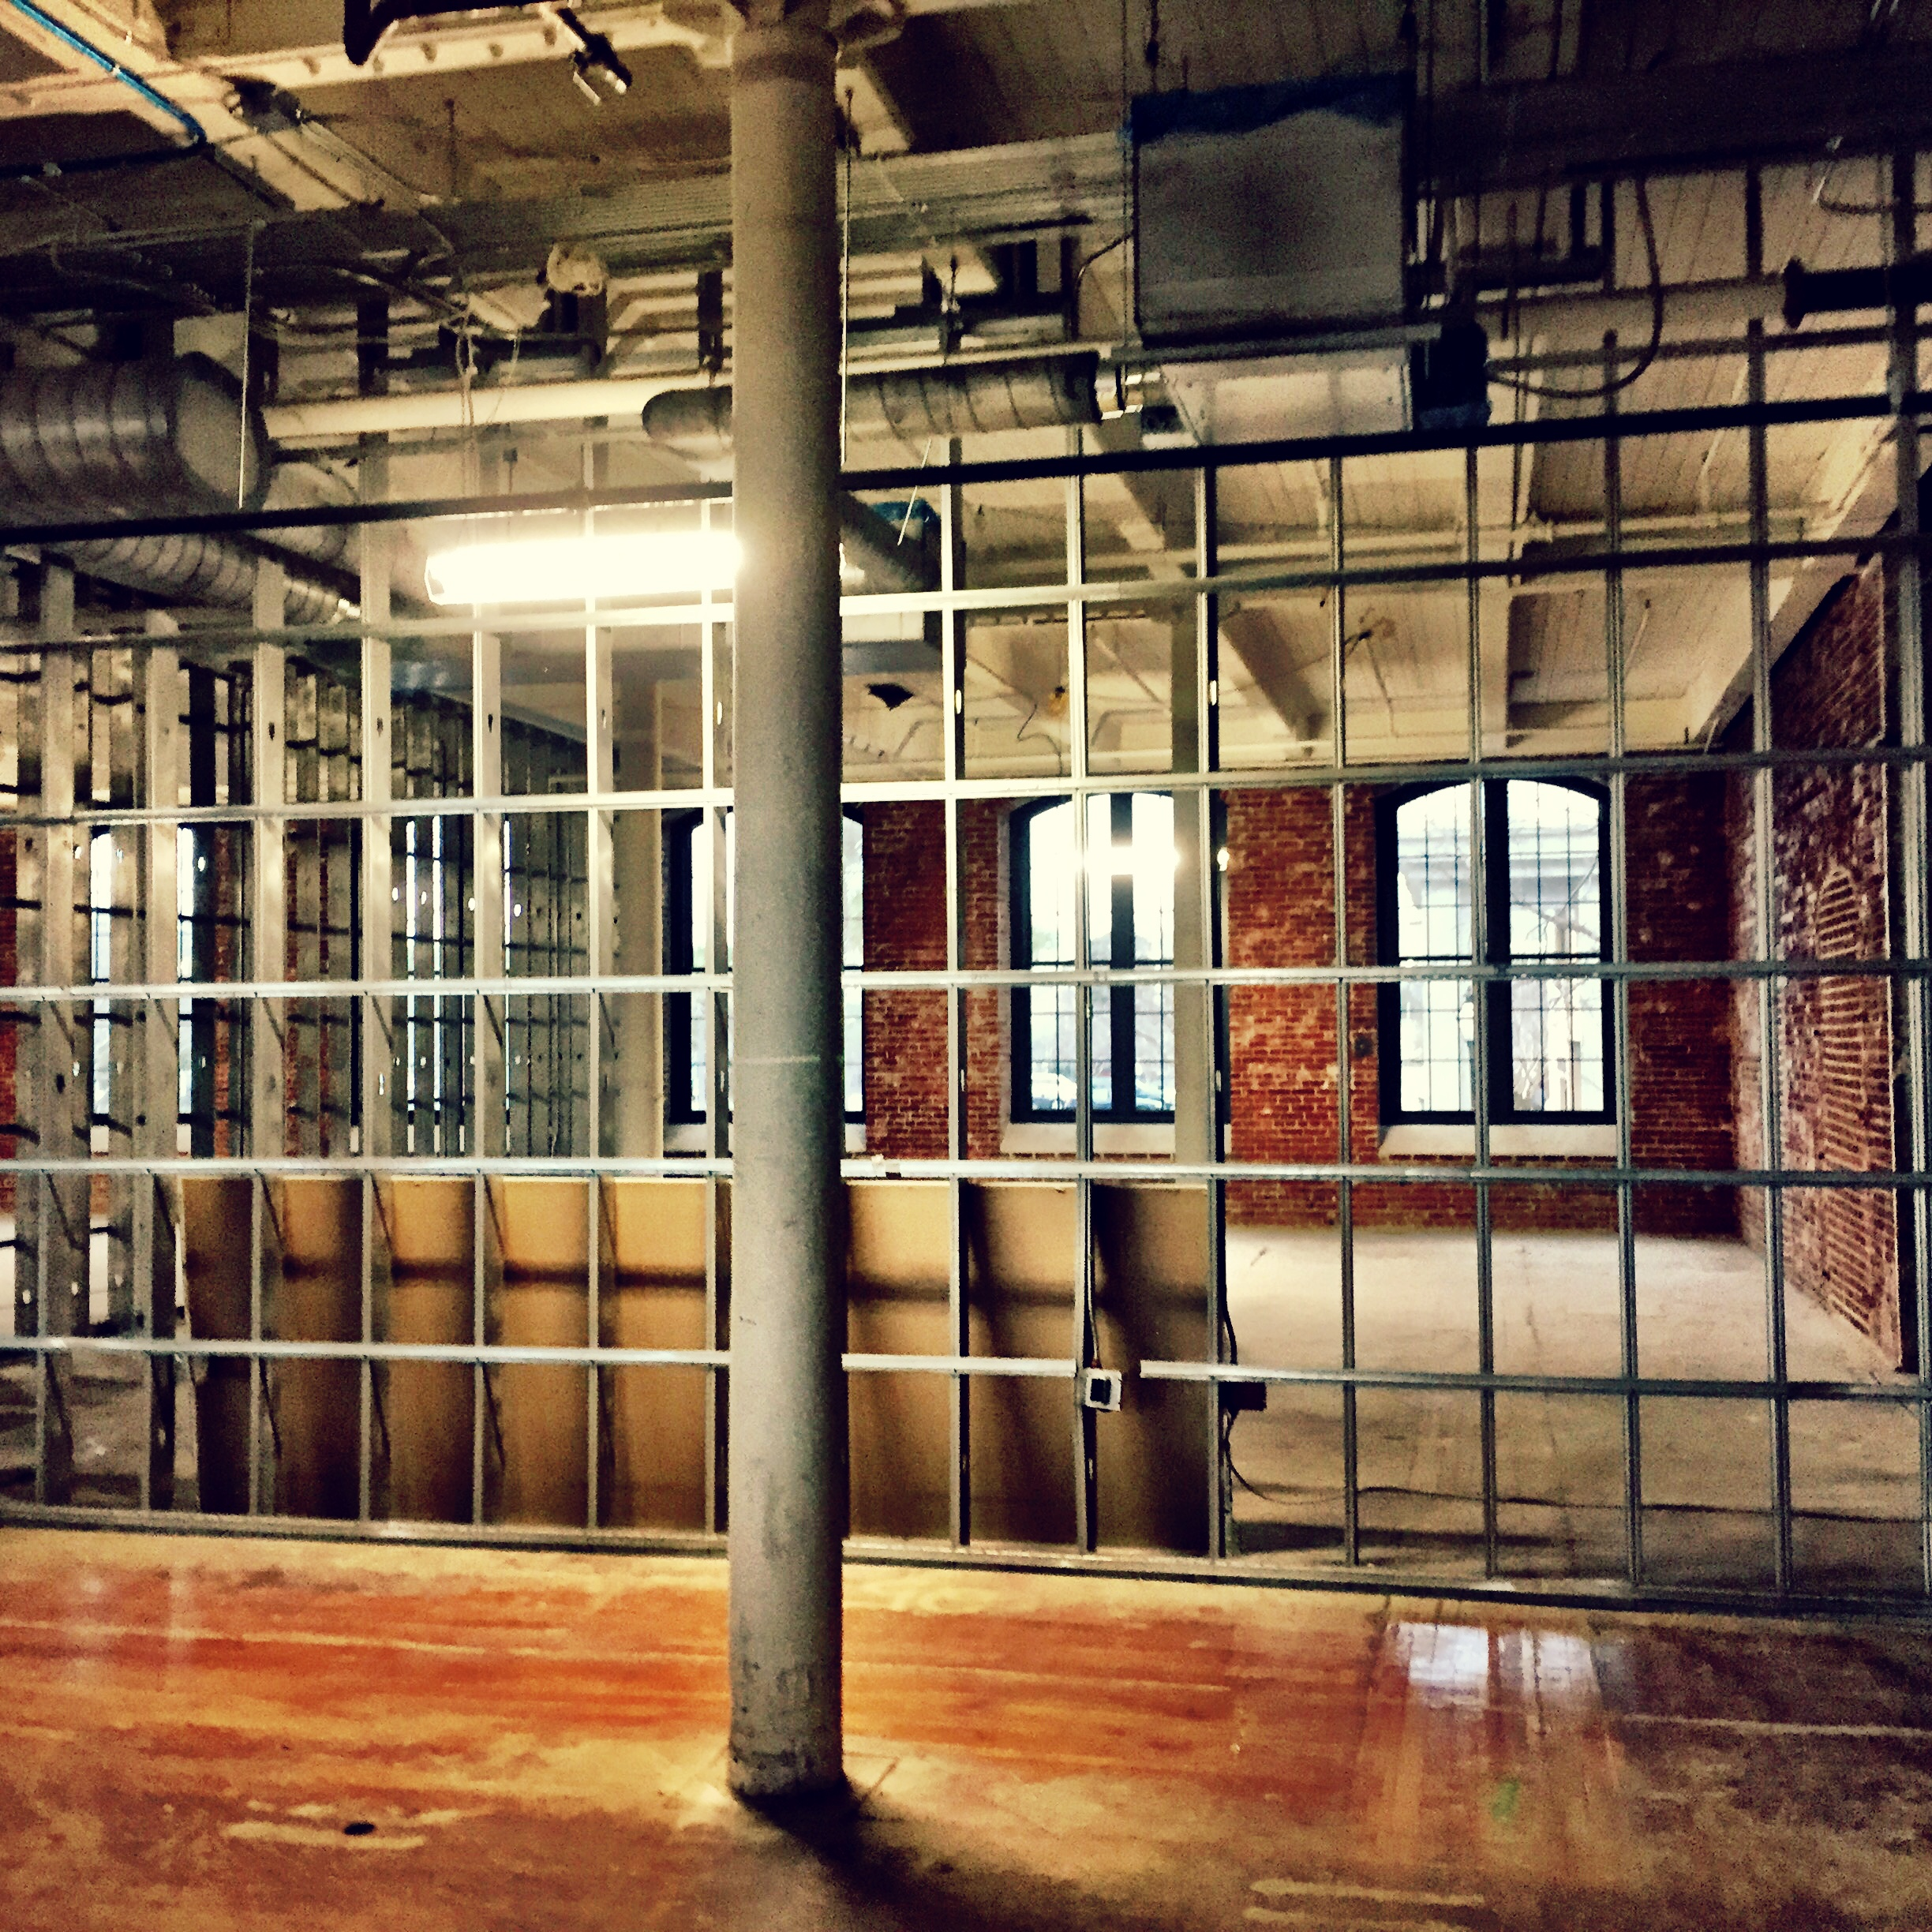 Here you can see some of the walls being framed for office space.